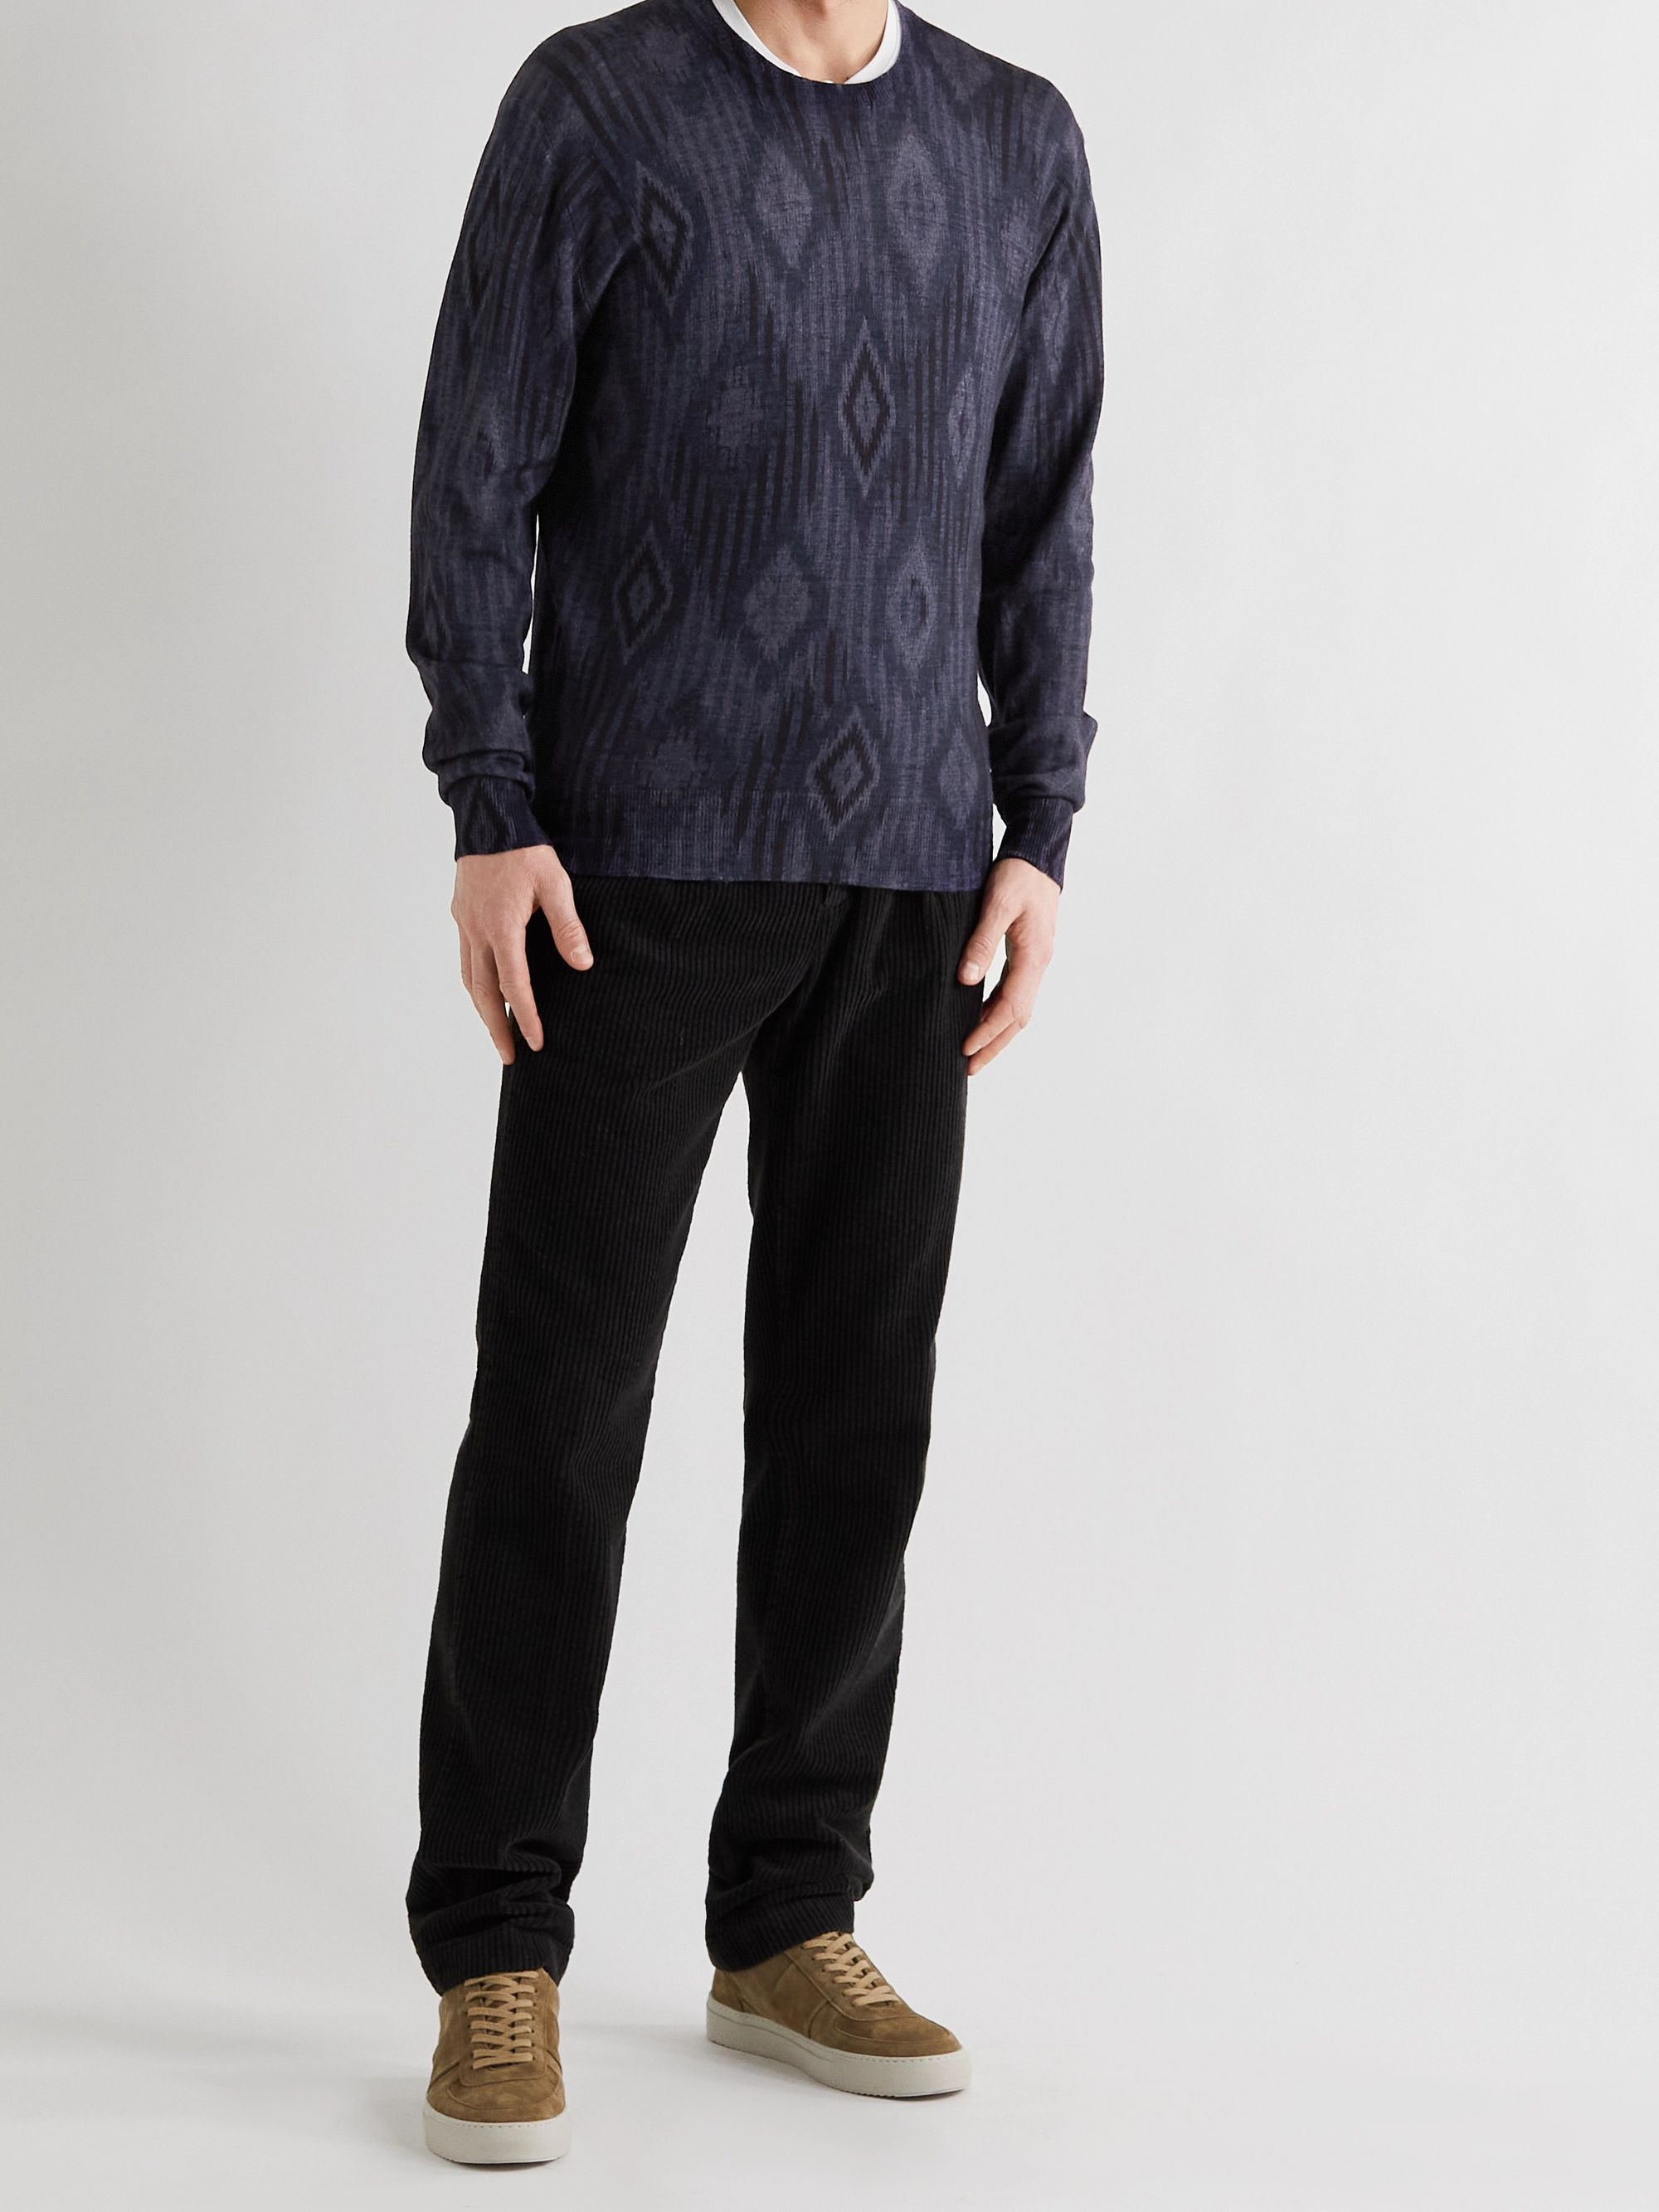 ETRO Printed Wool Sweater